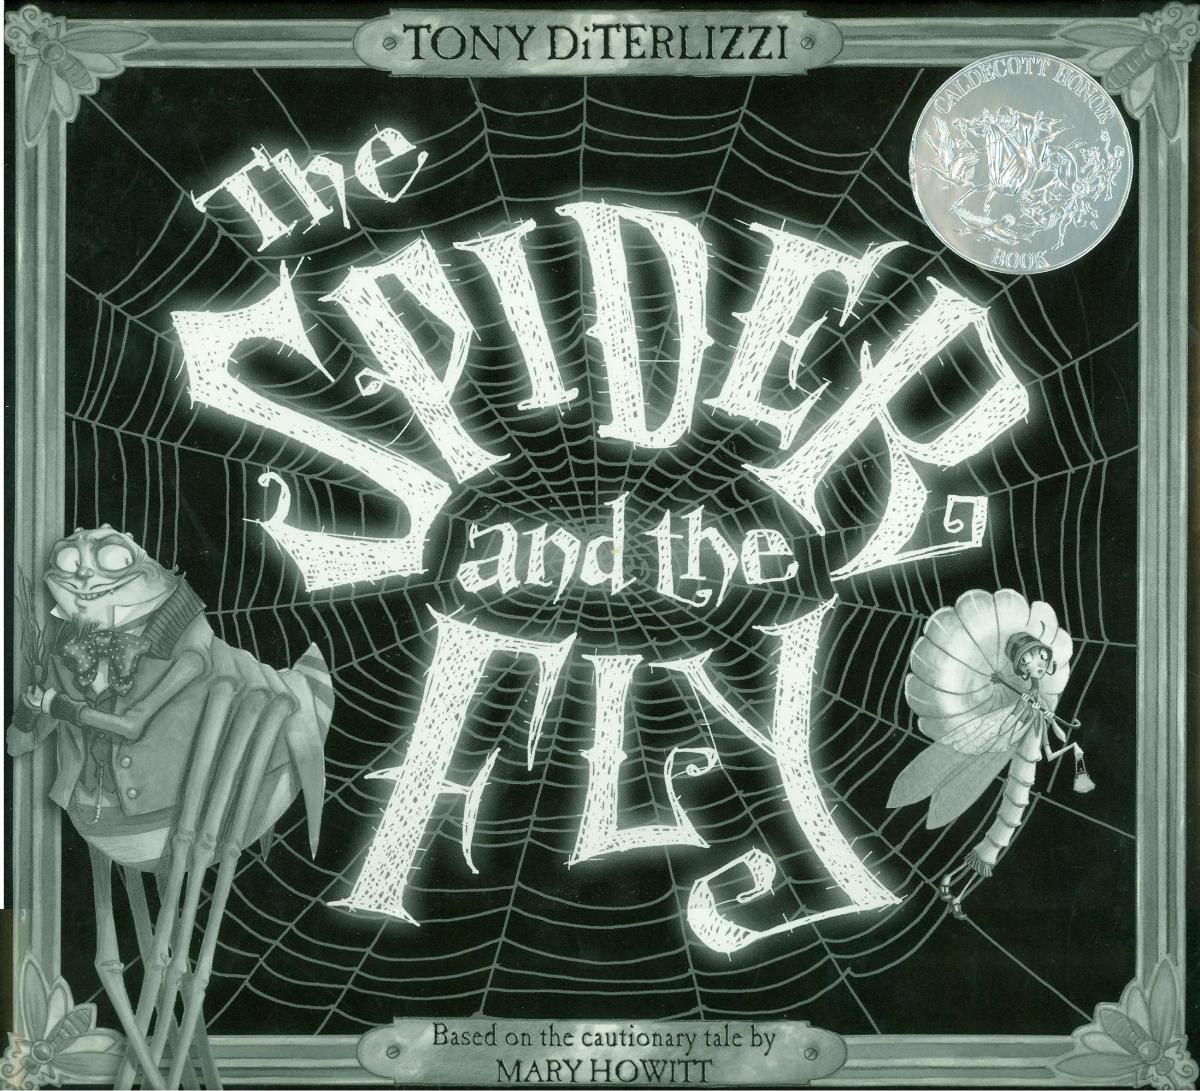 The Spider and the Fly - book cover image